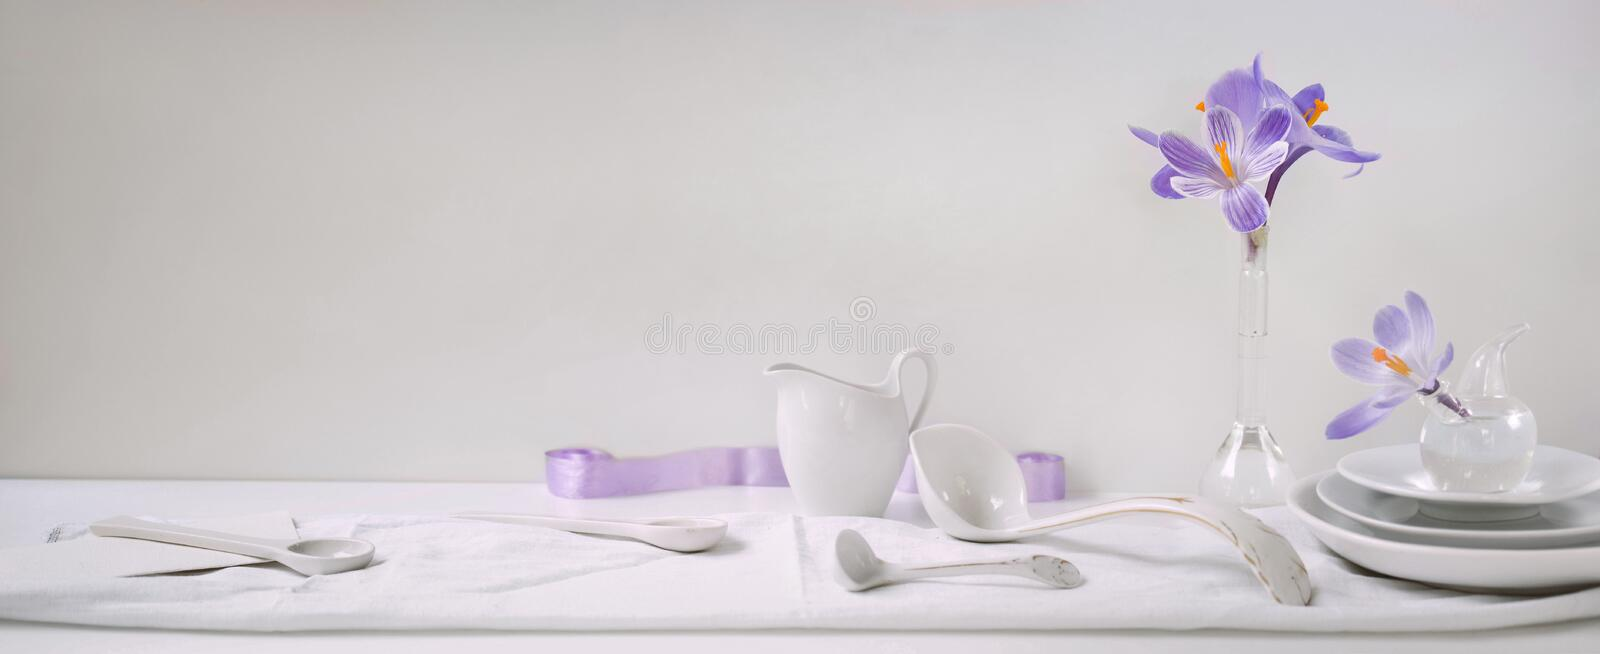 Header, banner for site design. Set of dishes for serving. Horizontal format, space for text stock photography